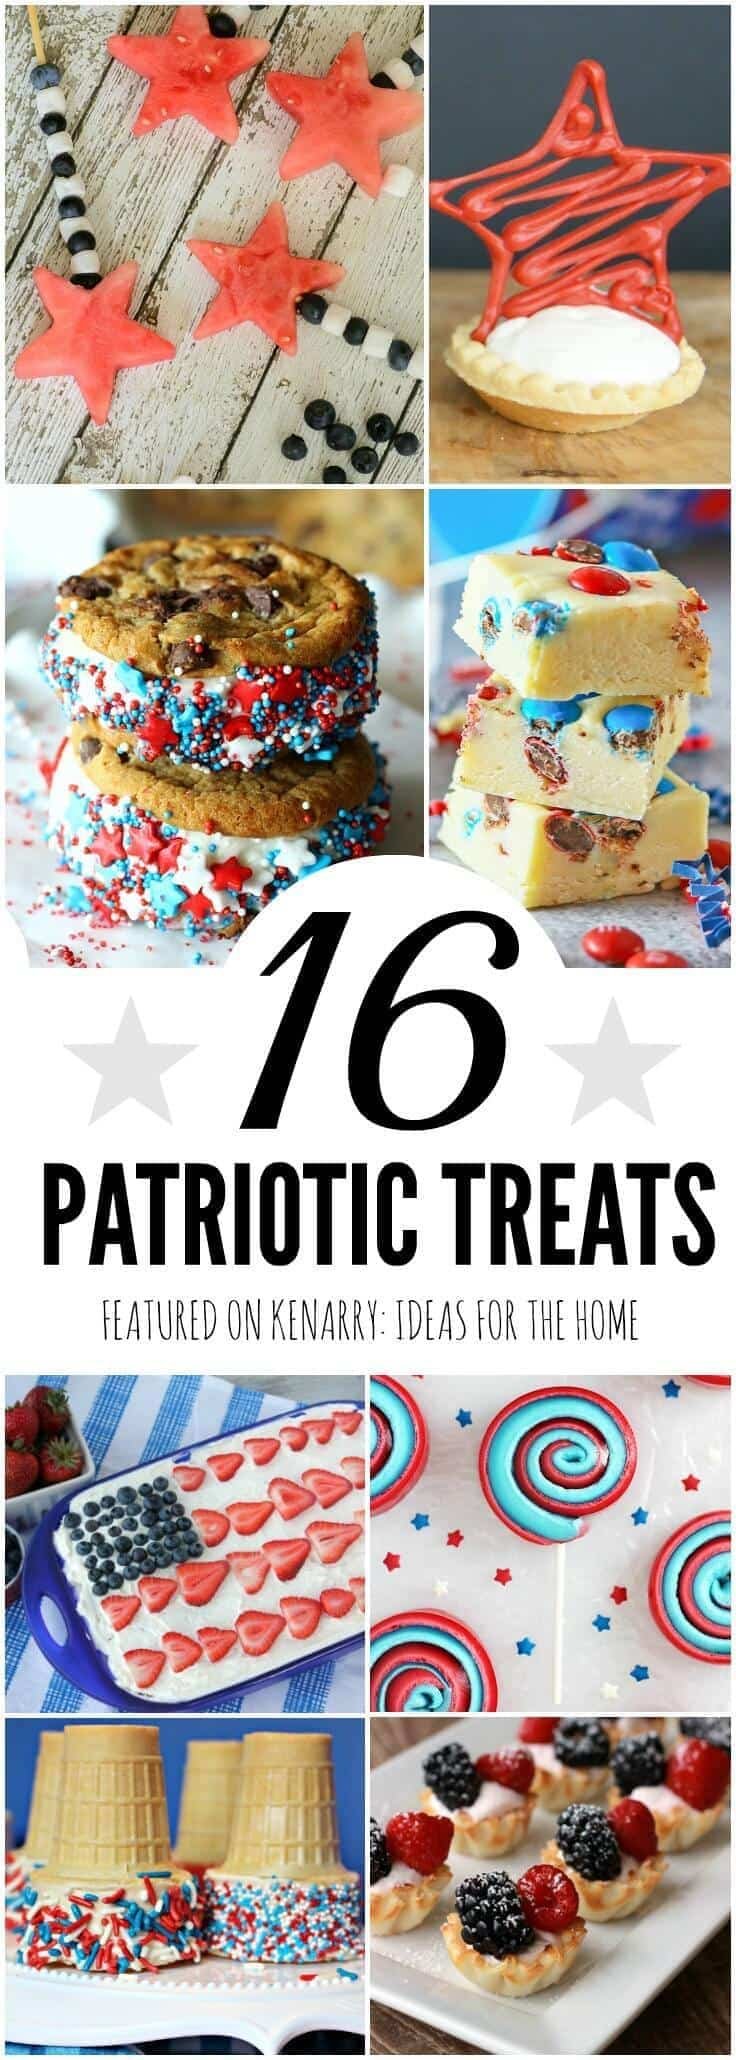 What delicious ideas for patriotic treats! These recipes would be perfect for 4th of July barbecues, Memorial Day picnics, Labor Day potlucks and other red, white and blue events throughout the summer.